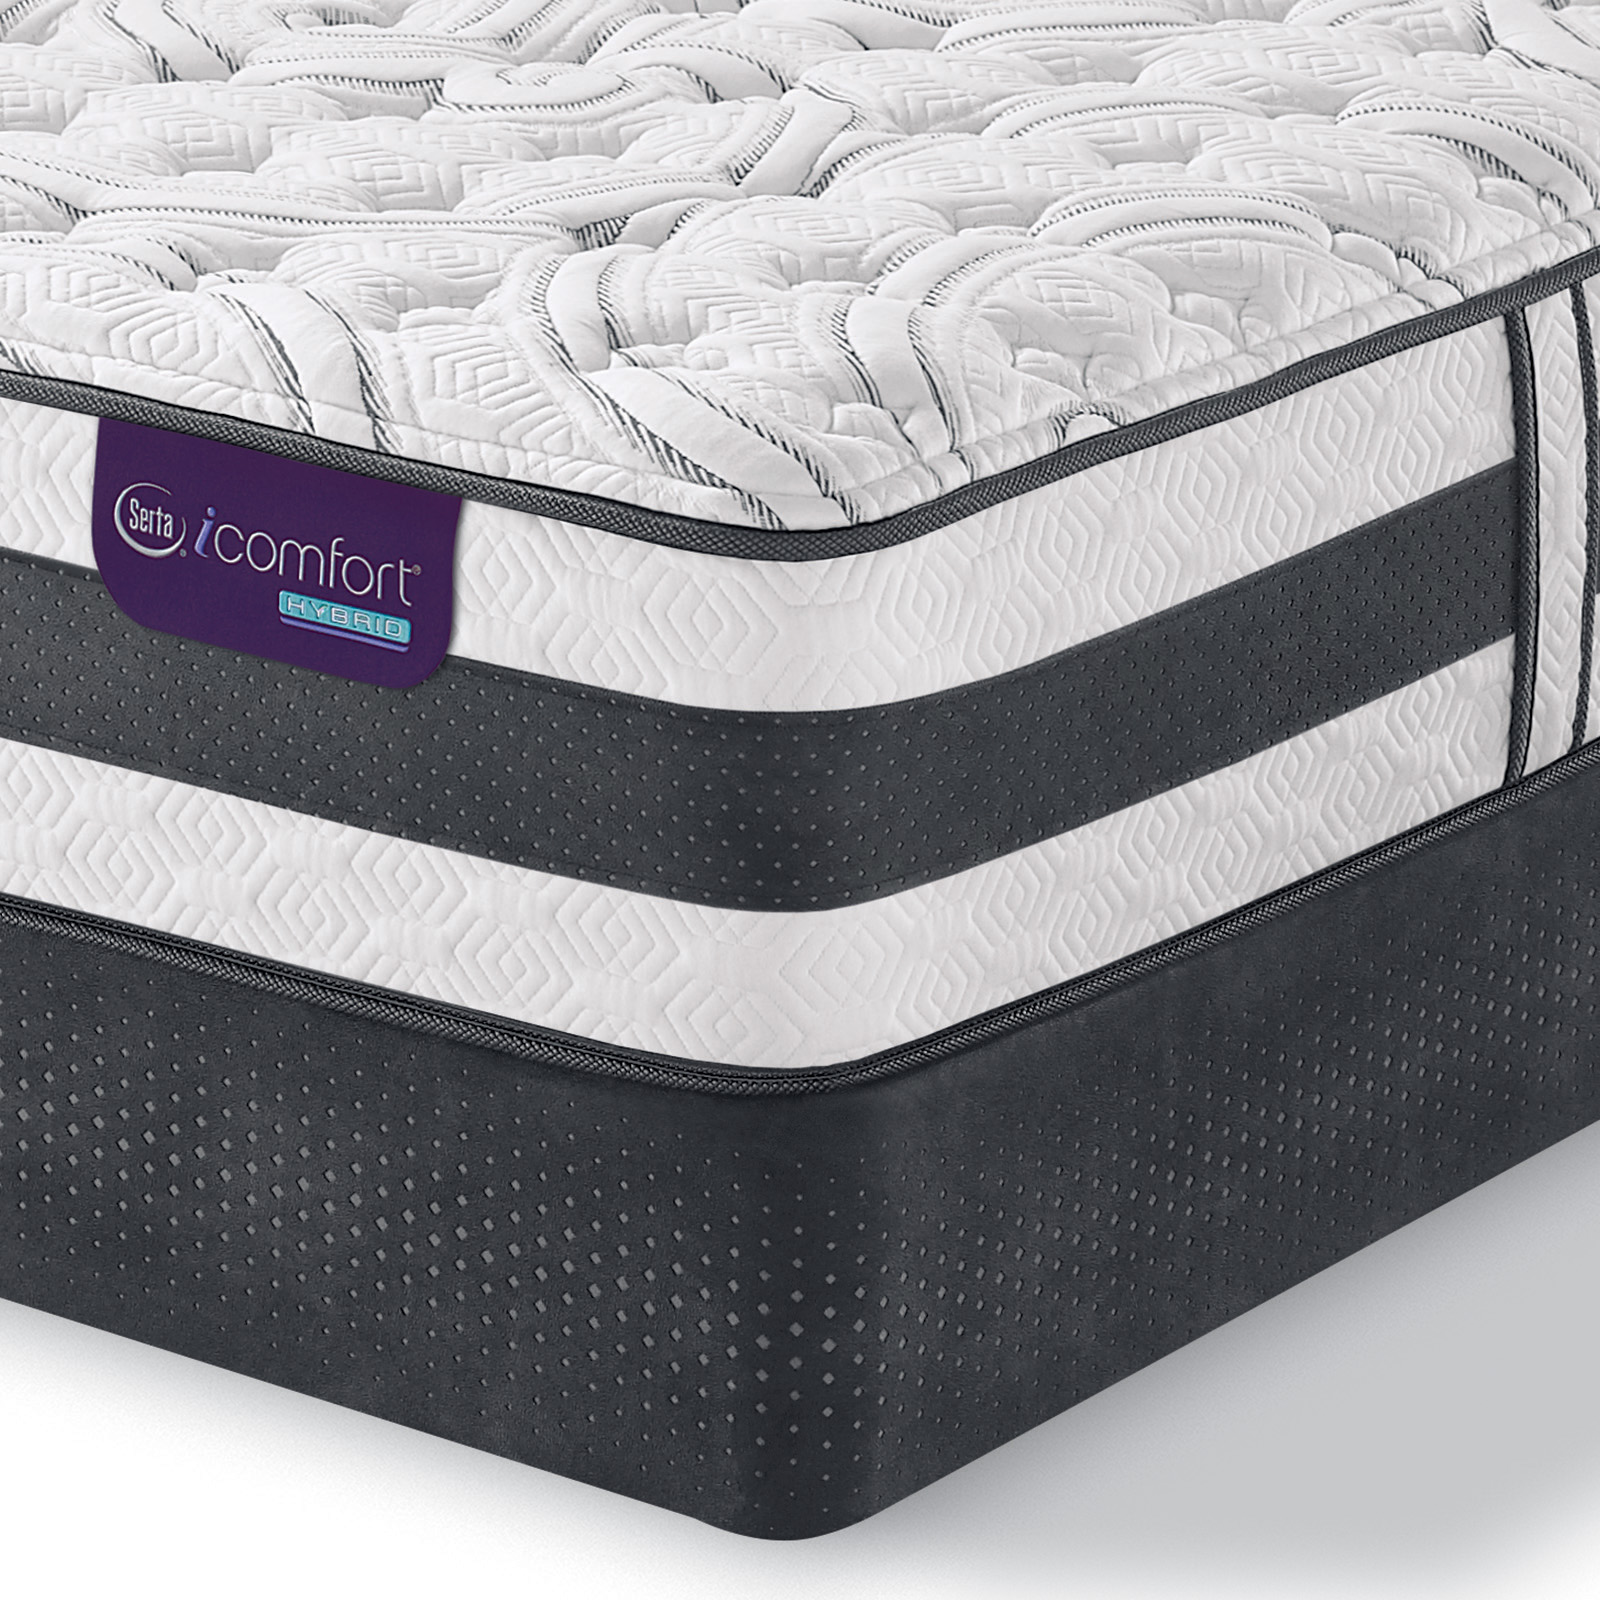 Serta i fort Hybrid Applause II Firm Mattress Reviews